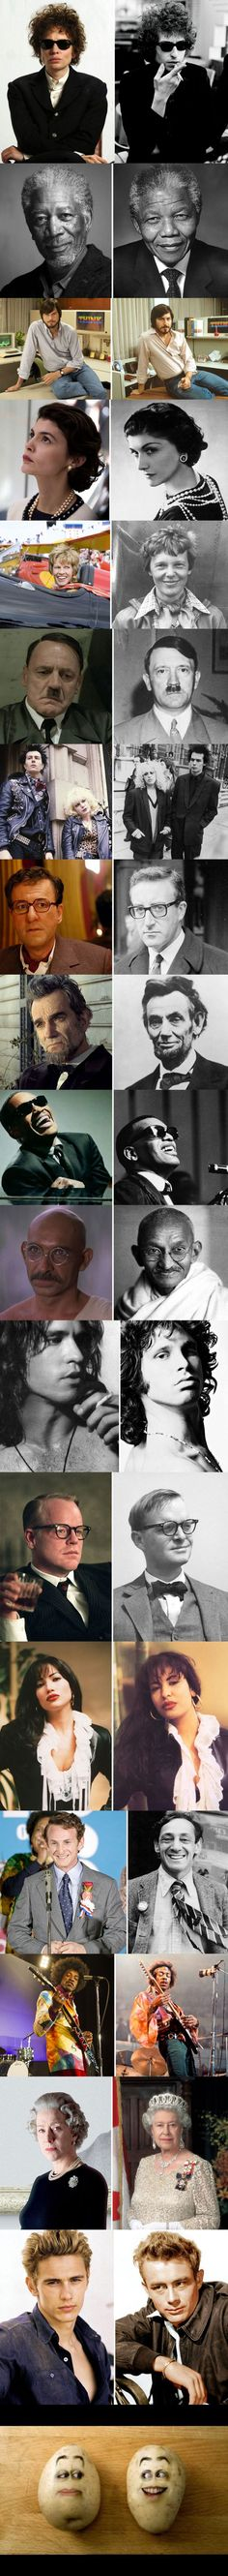 Actors Vs. Historic People They Played - 9GAG